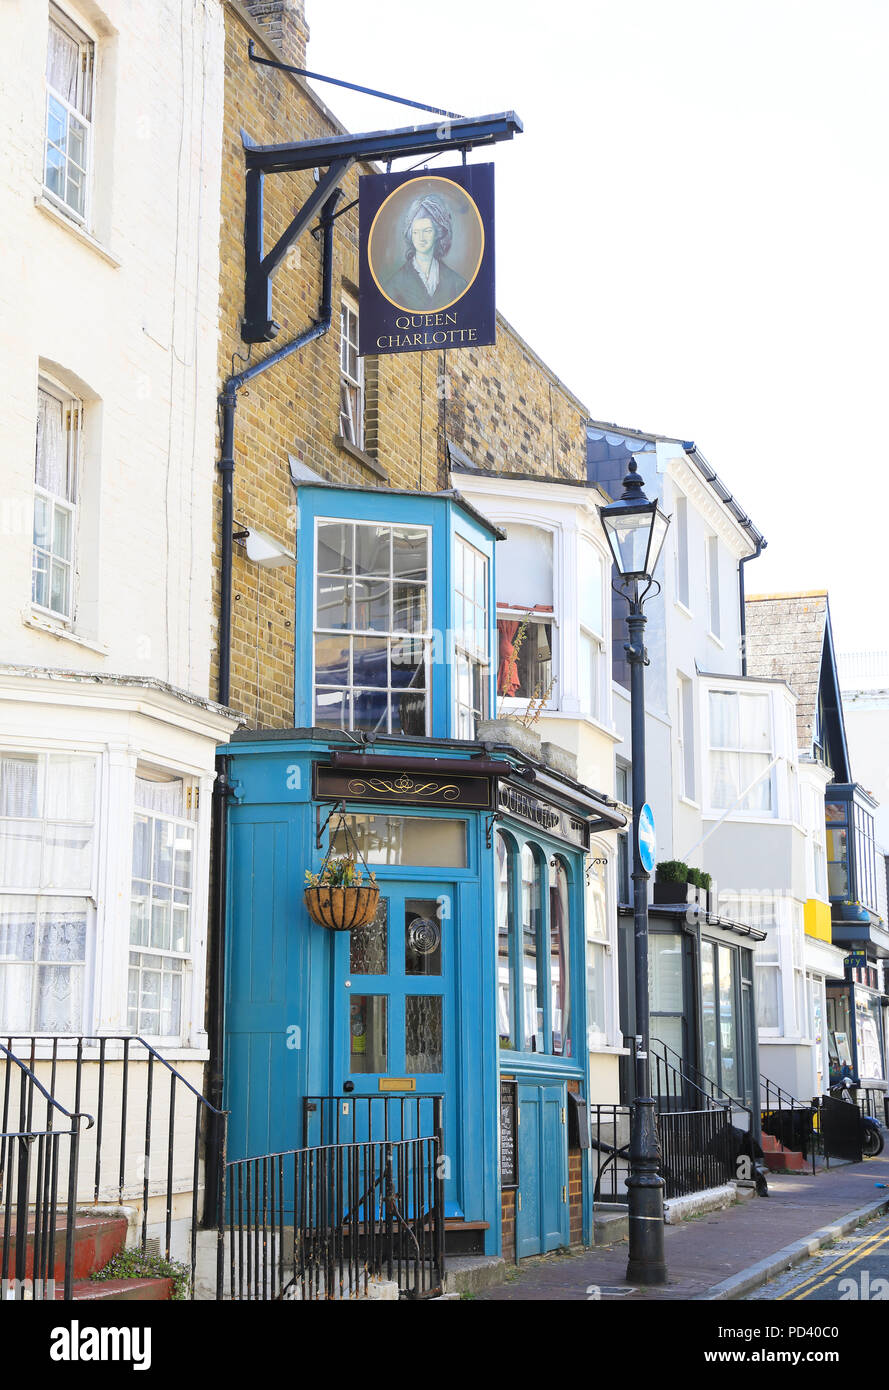 The historic buildings, and pubs of arty Addington Street, in the West Cliff conservation area, in Ramsgate, on the Isle of Thanet, Kent, UK - Stock Image